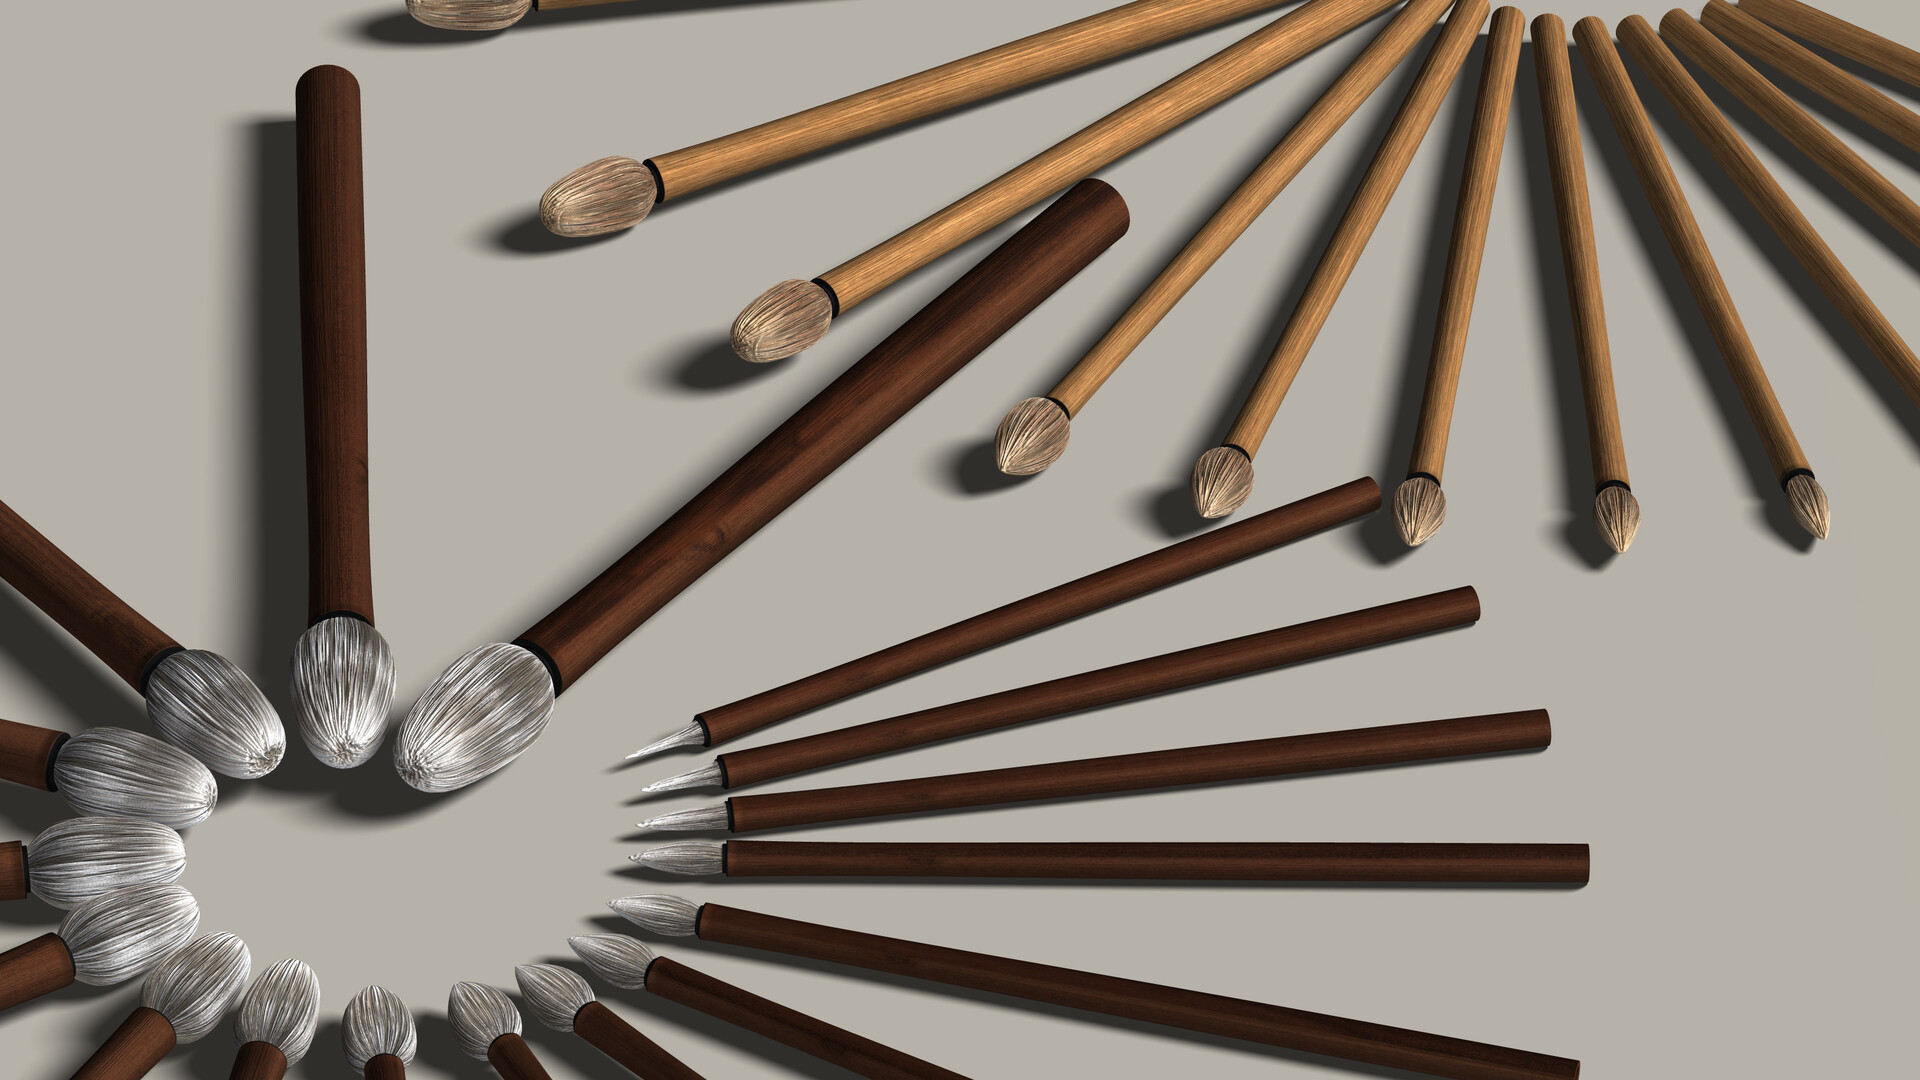 This image shows the brushes, in each of 17 sizes, in a pair of different textures.